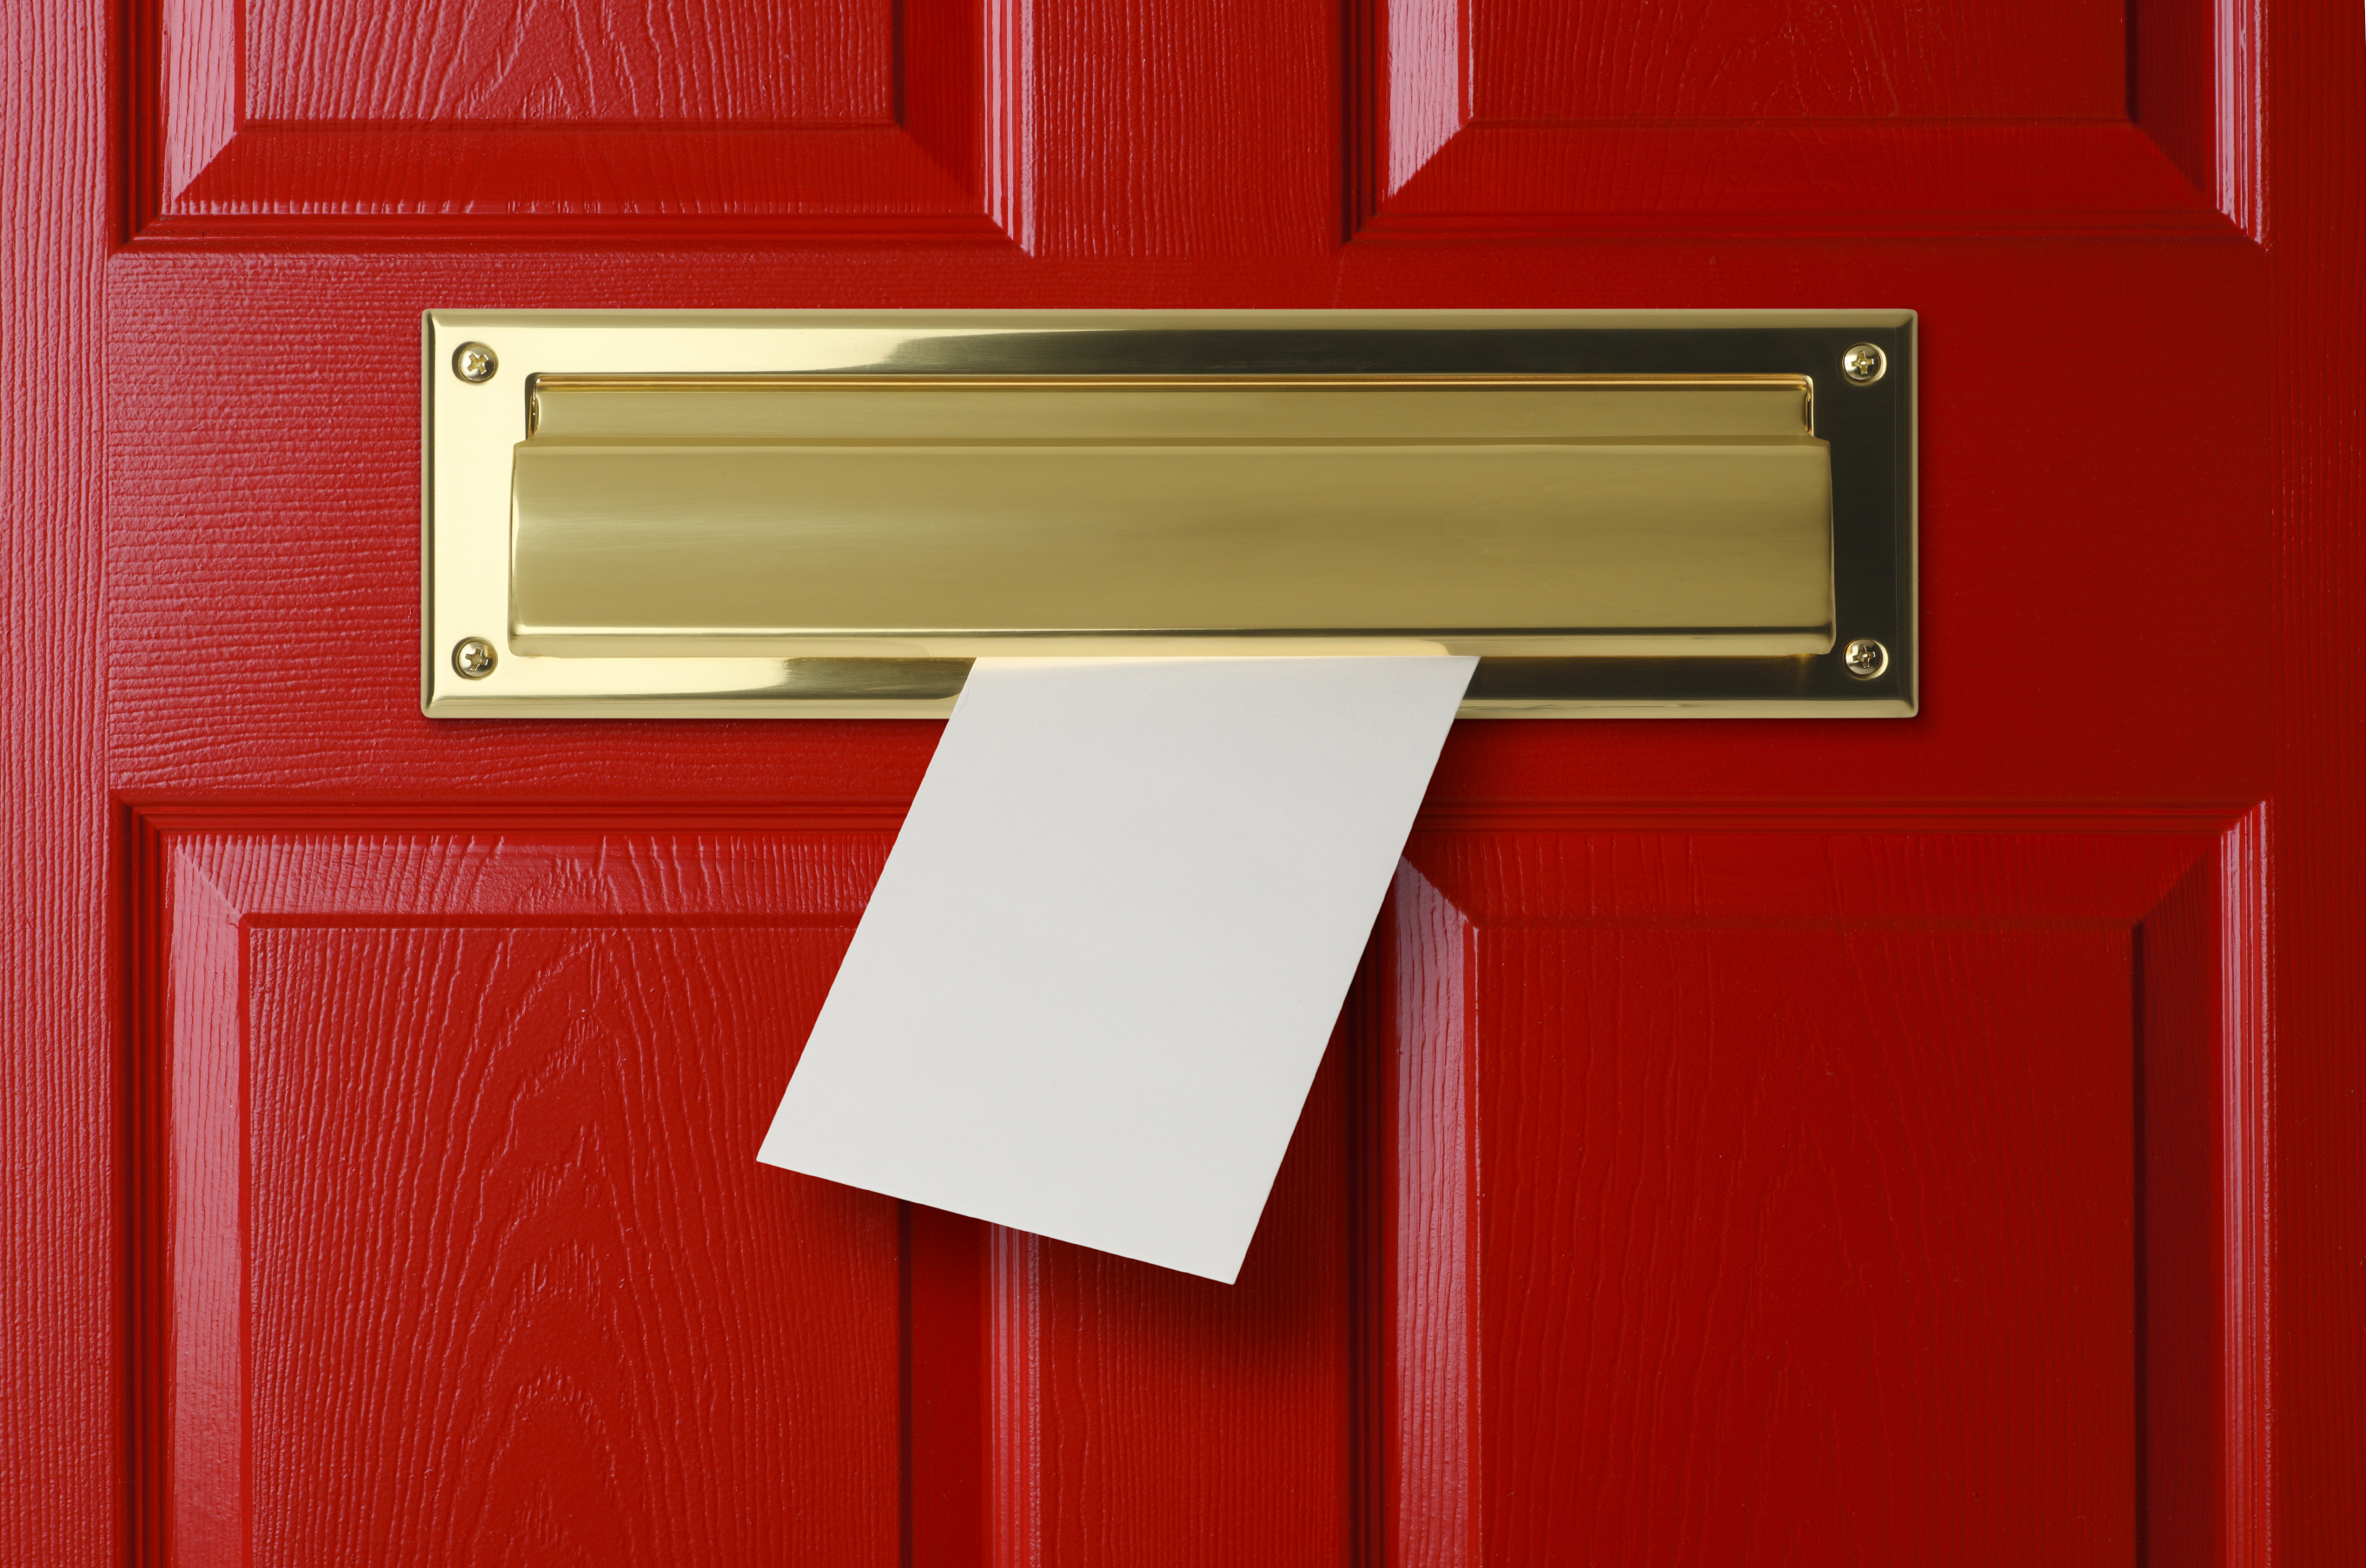 Superieur Red Door With Mail Slot Blog